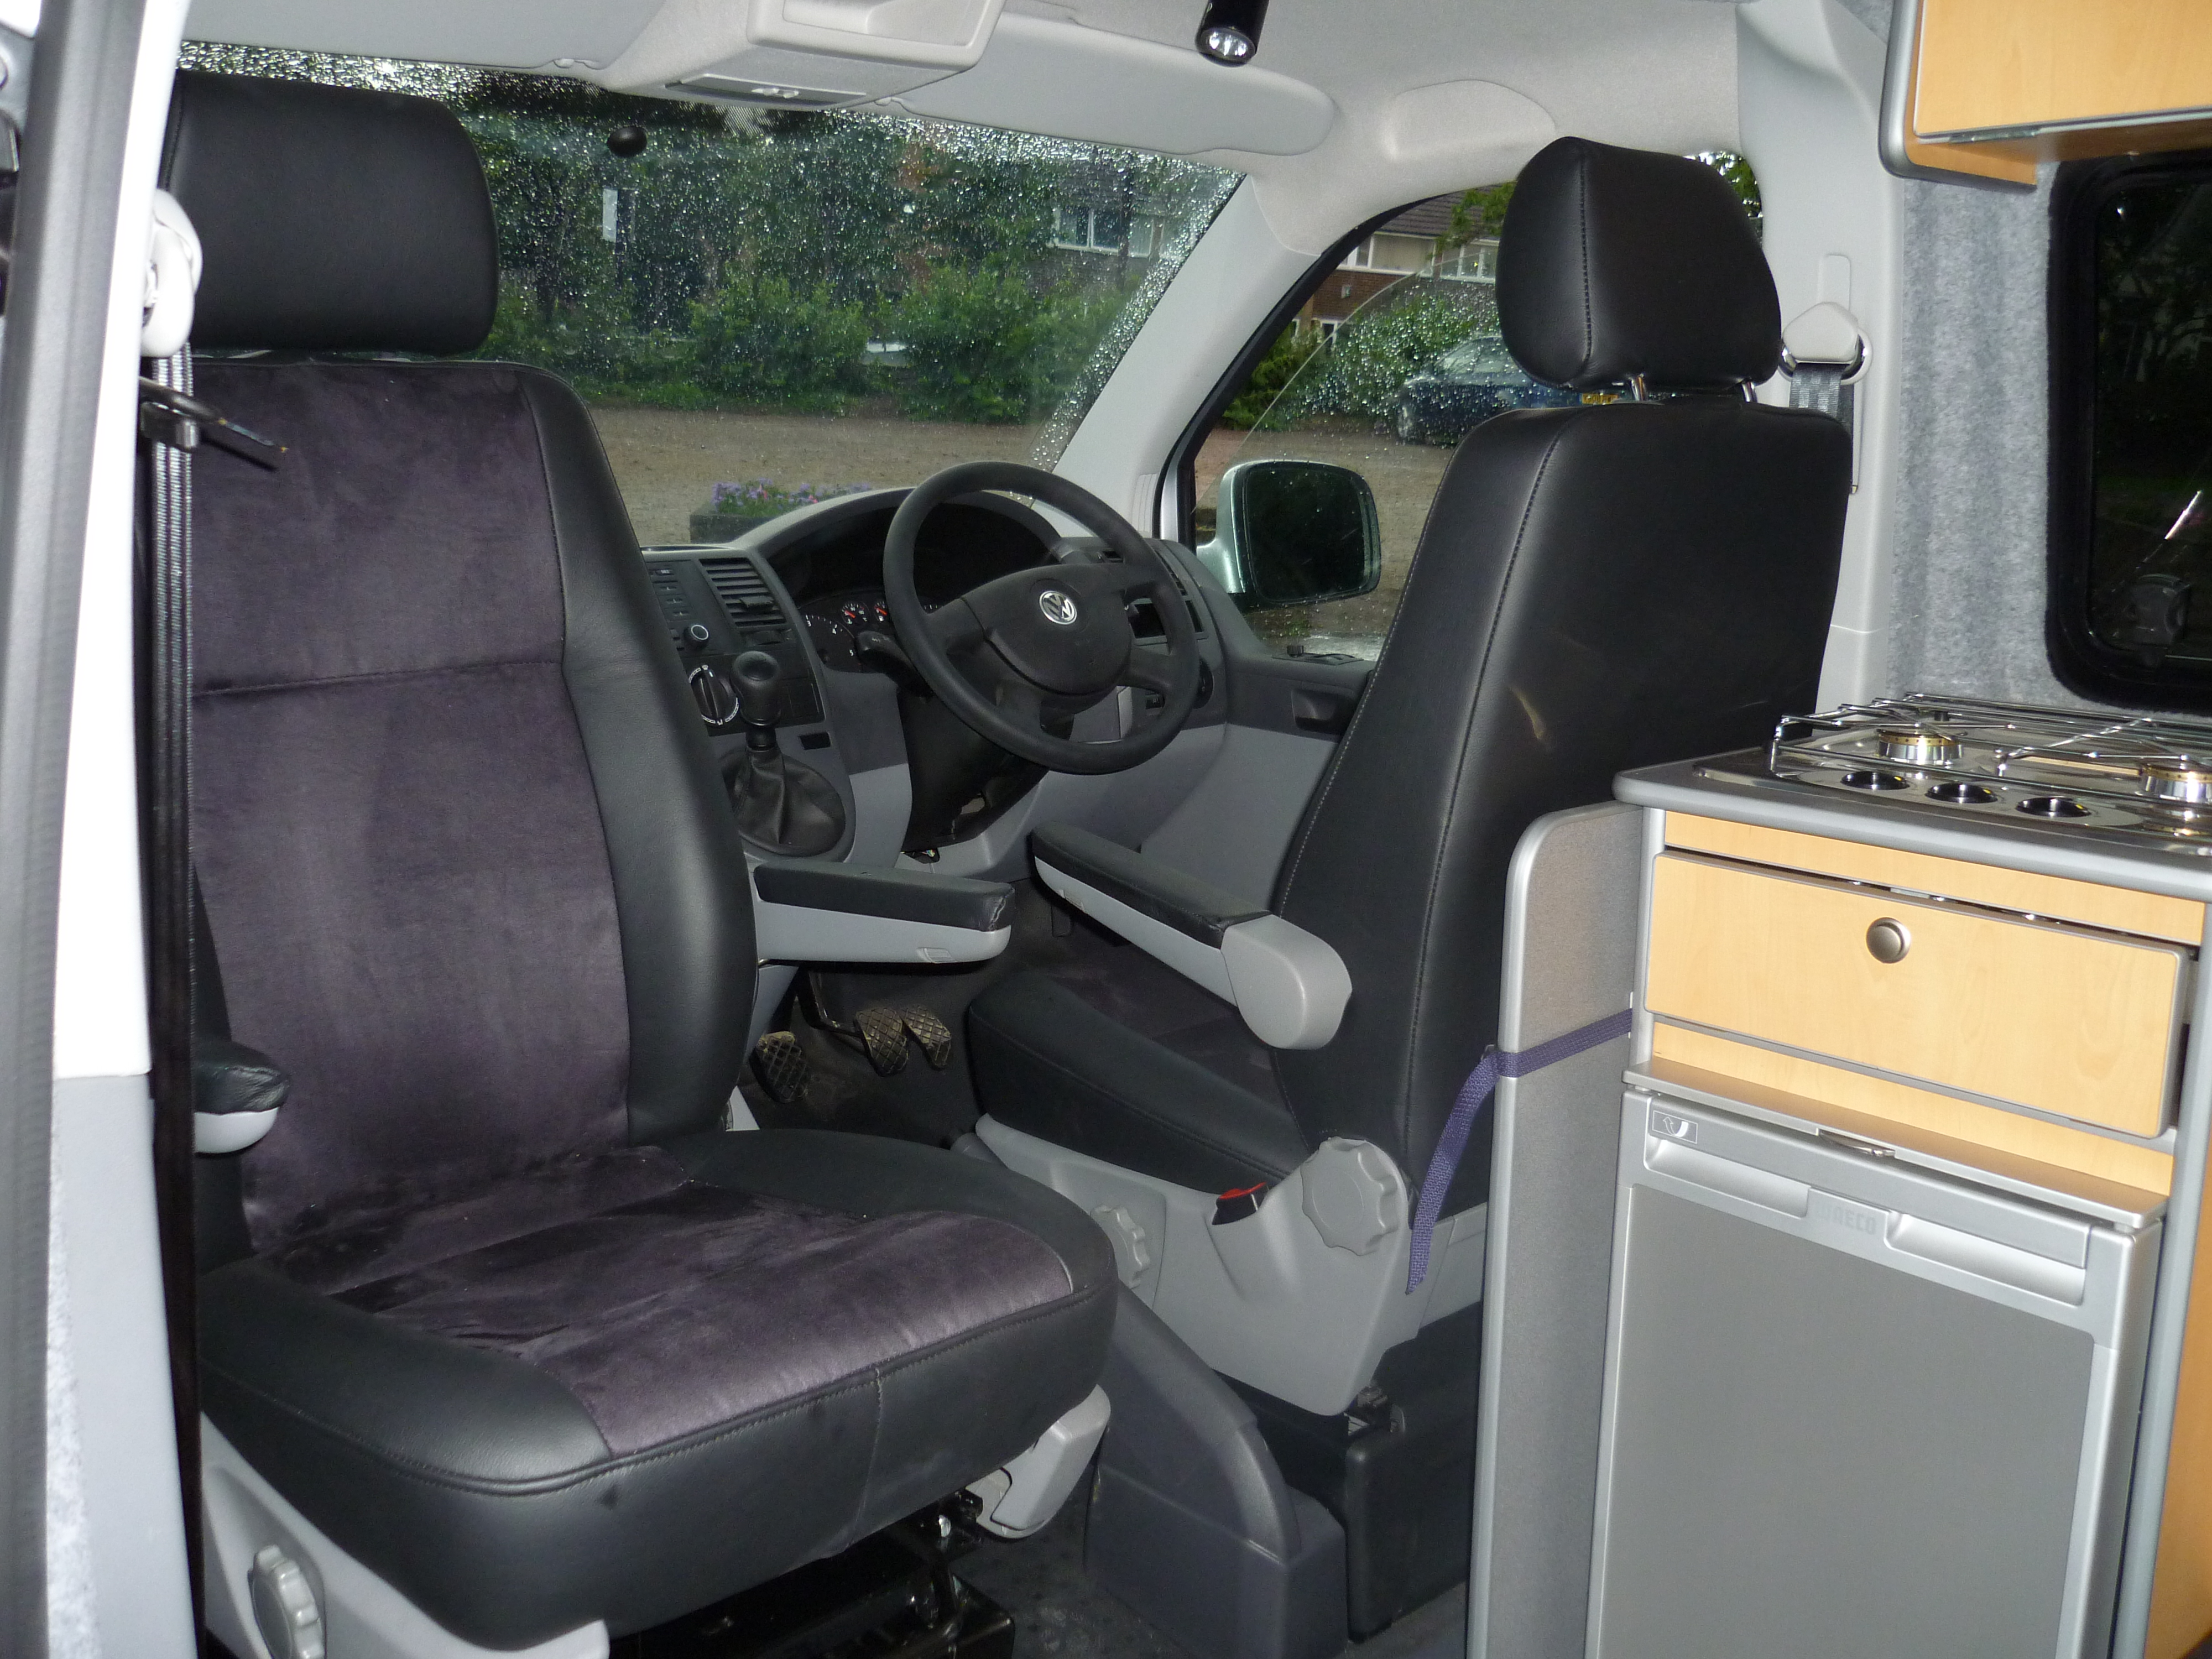 Captain Seats In A VW T5 Campervan Conversion Are Fantastic Addition To The Van And Make Your Camper Experience Far More Enjoyable